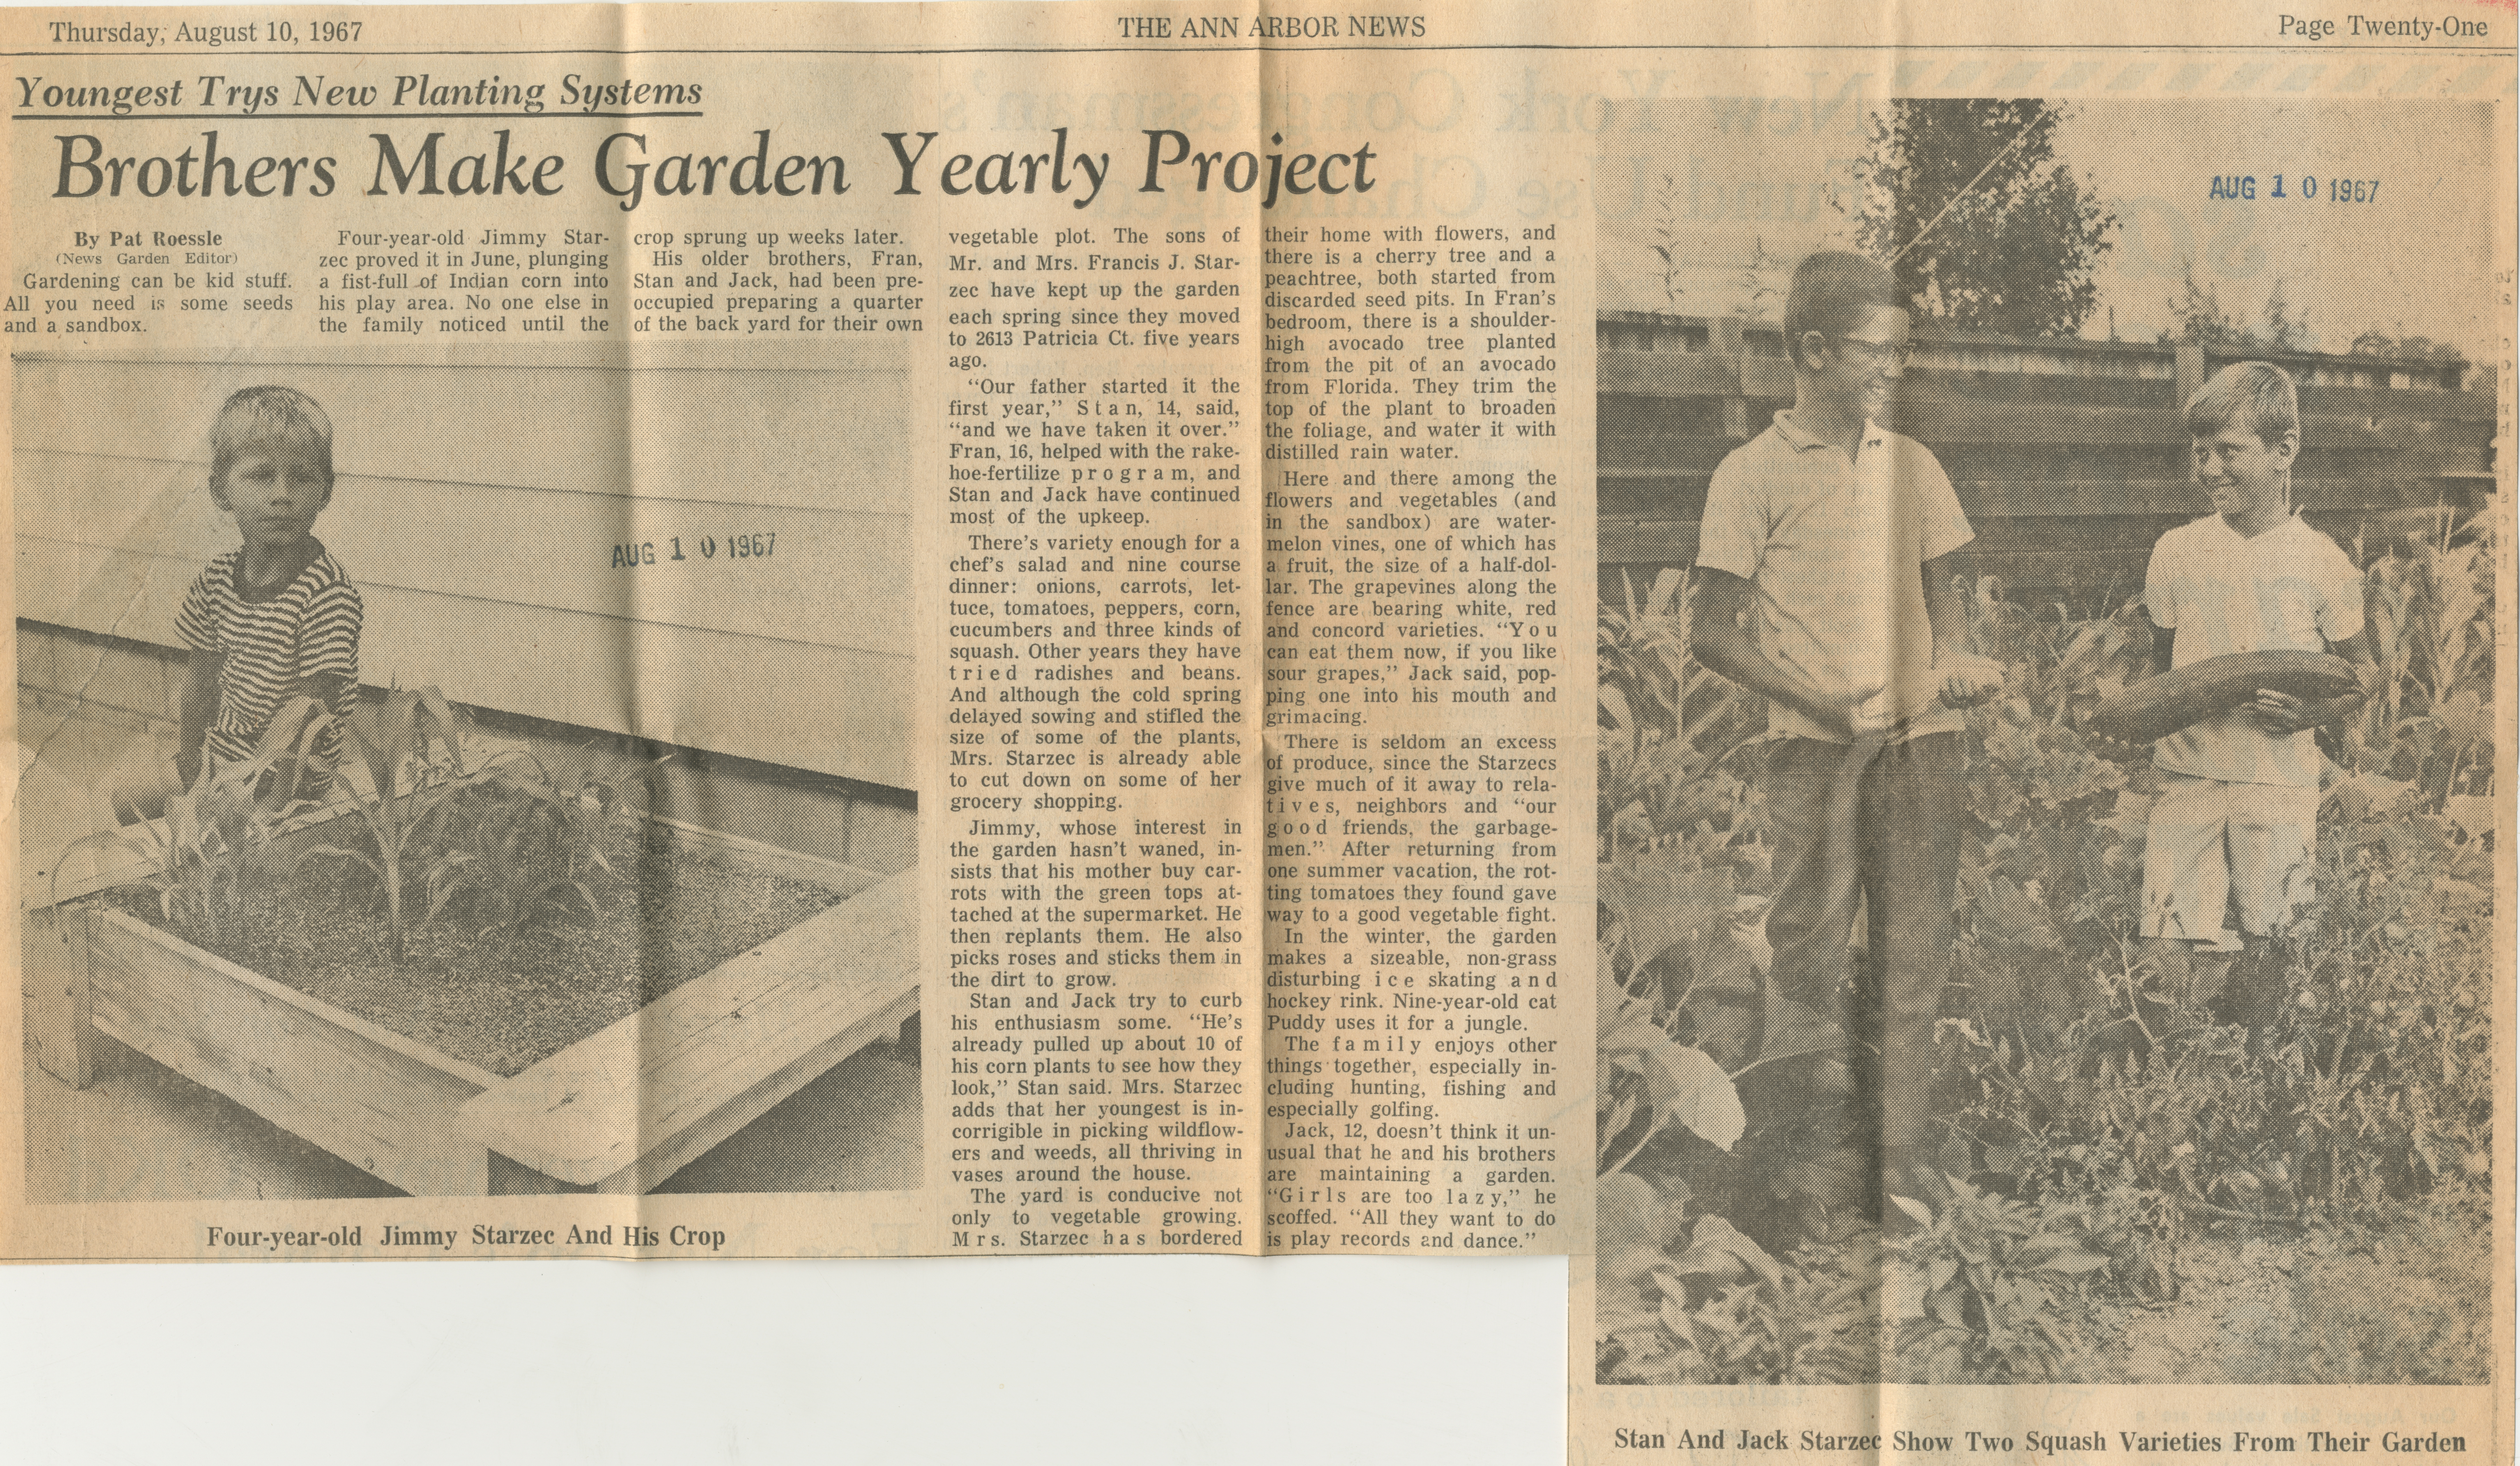 Brothers Make Garden Yearly Project image